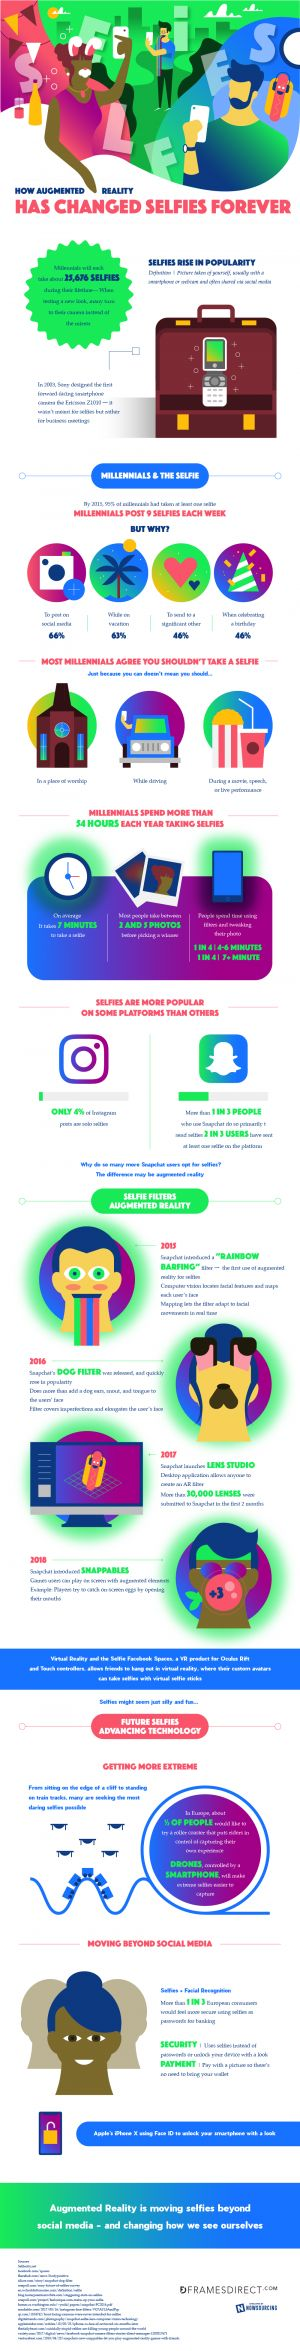 Augmented Reality Making Selfies More Popular: Infographic